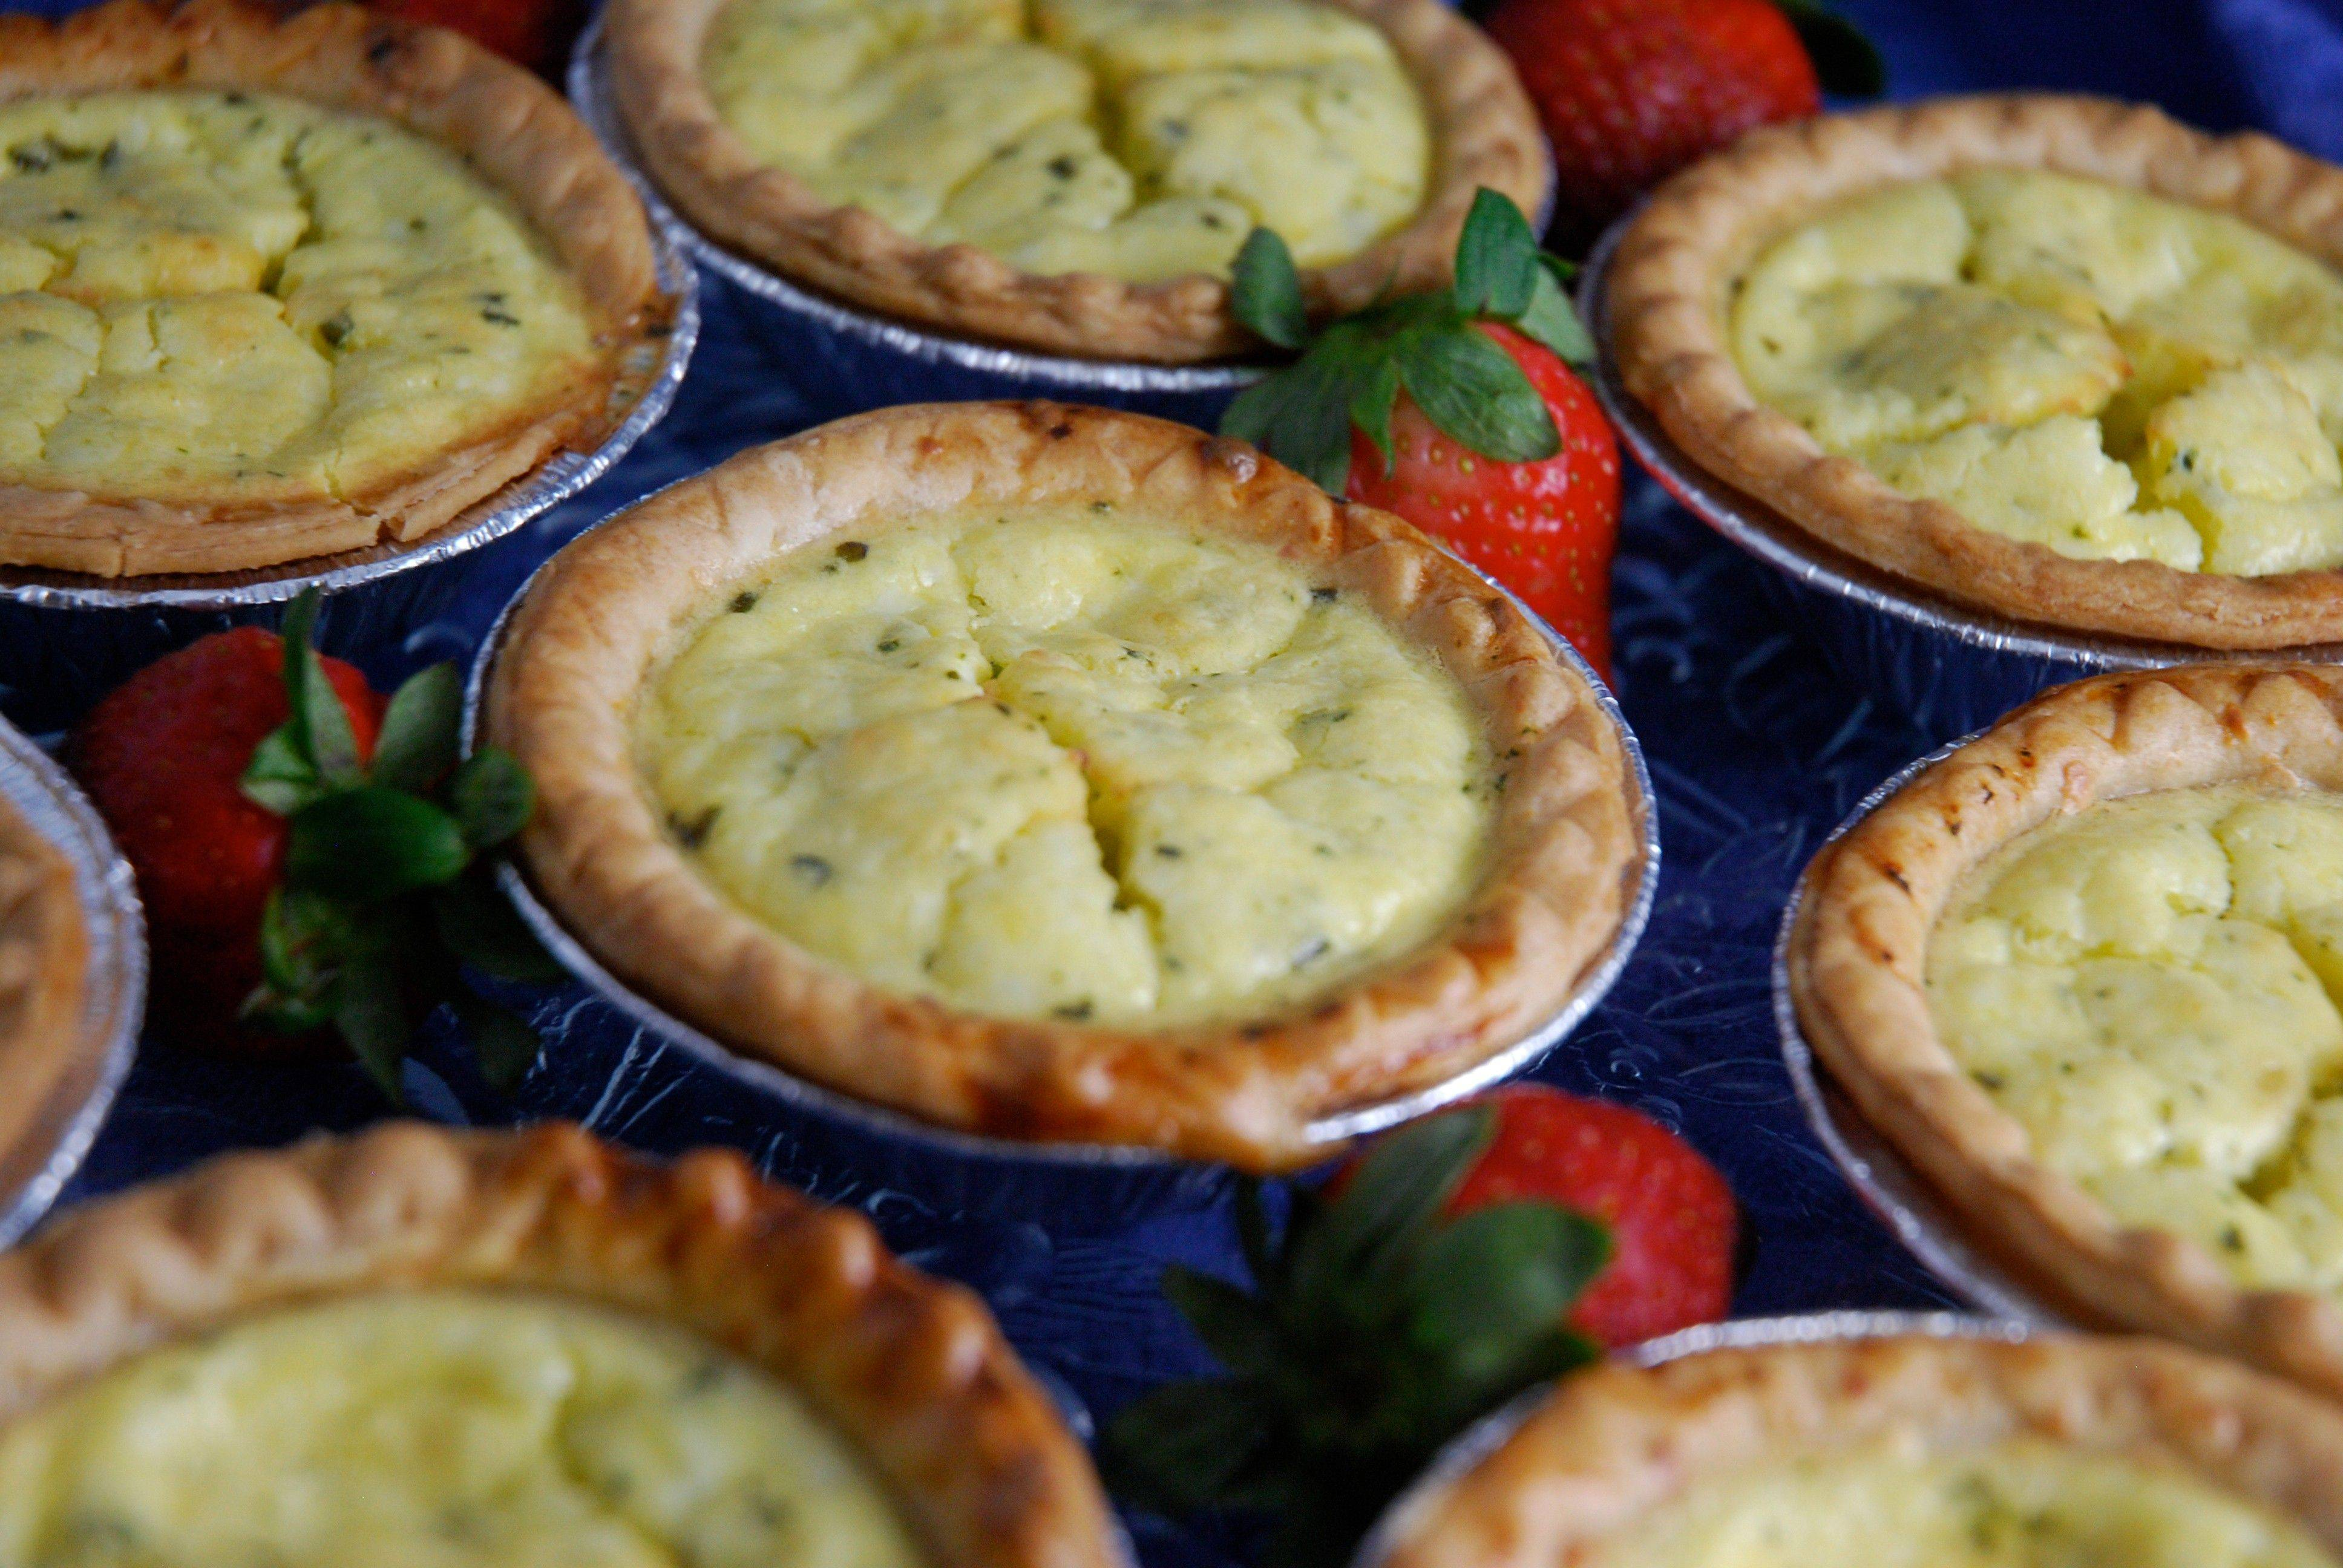 Individual-sized pie shells are the perfect size for personal quiches serves at a spring brunch.